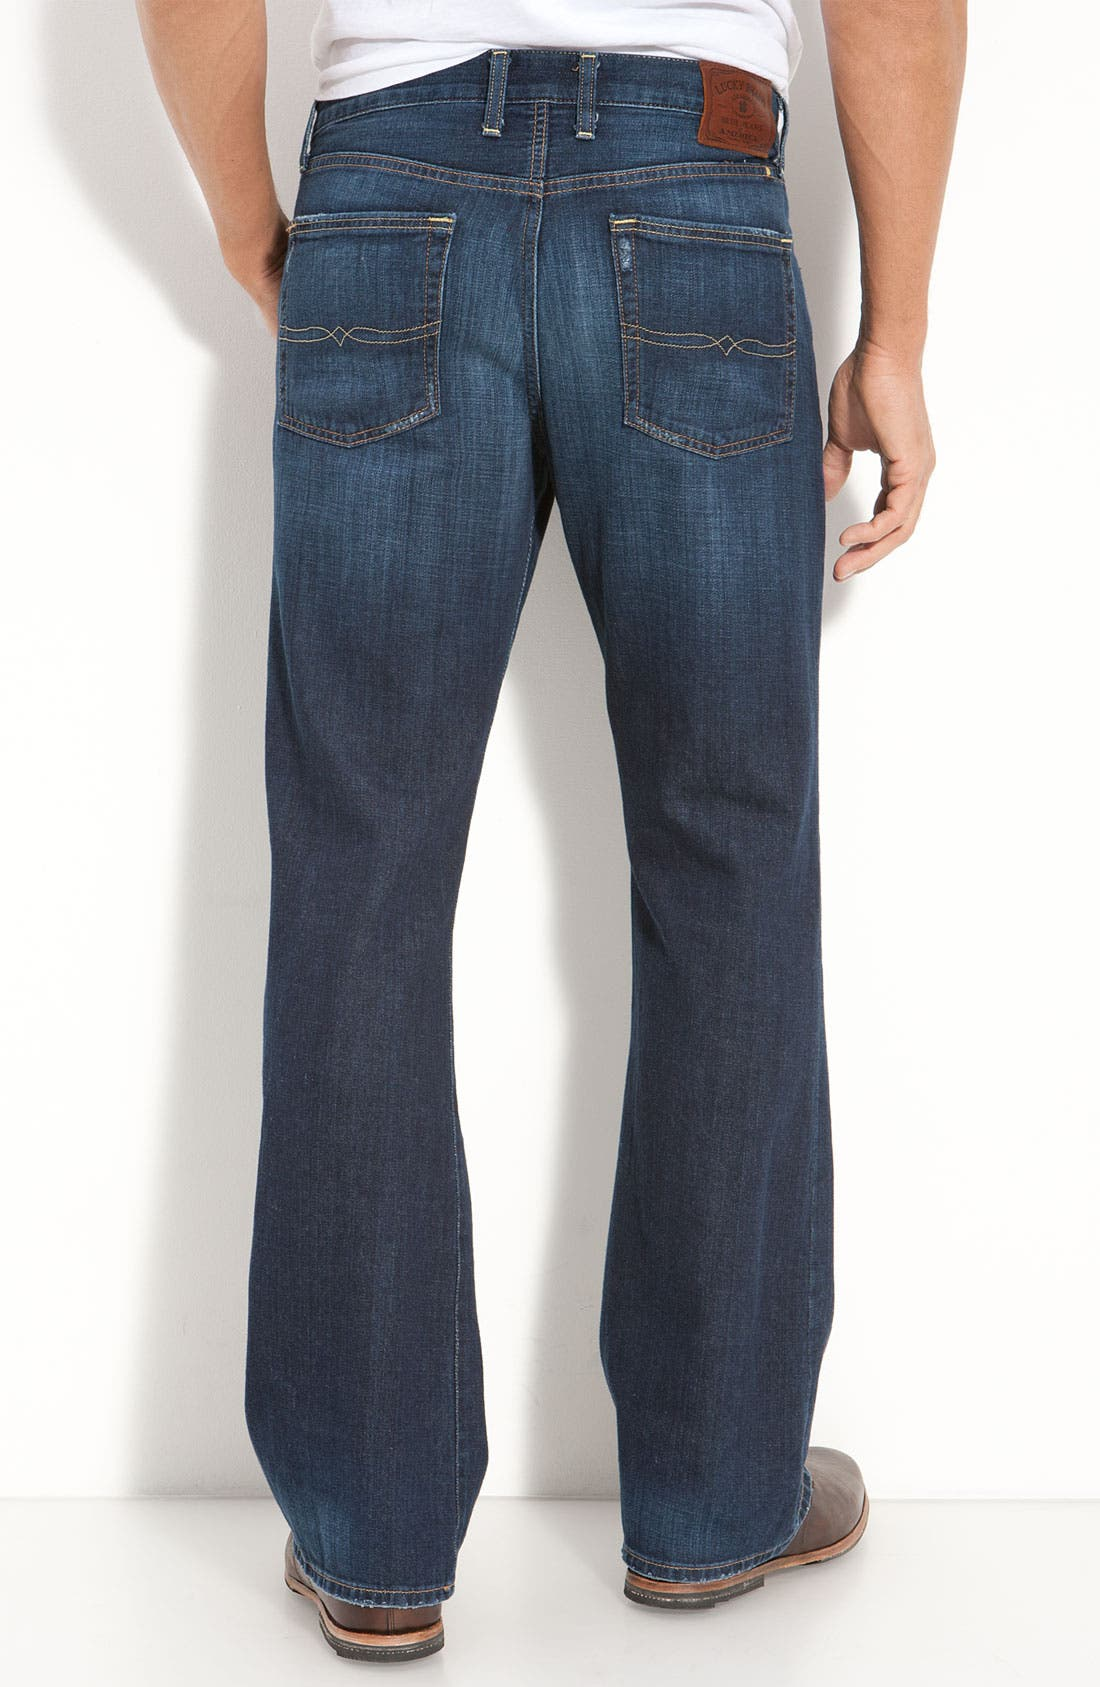 Alternate Image 1 Selected - Lucky Brand 'Vintage' Bootcut Jeans (Dysart)